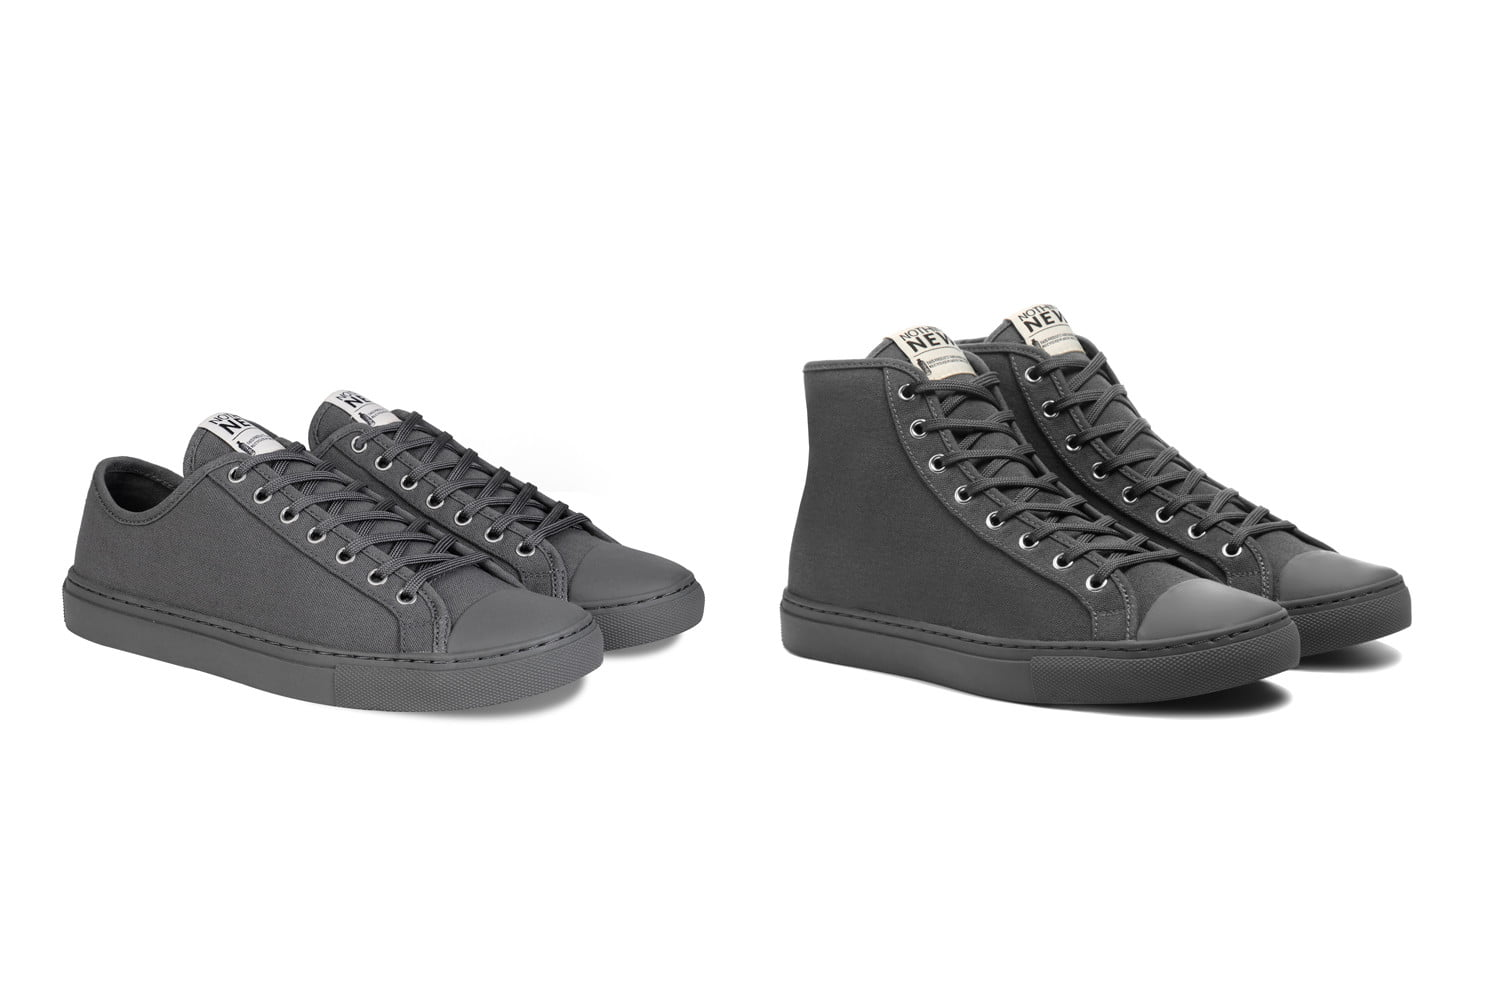 nothing new sustainable sneakers shoes grey lowhigh top